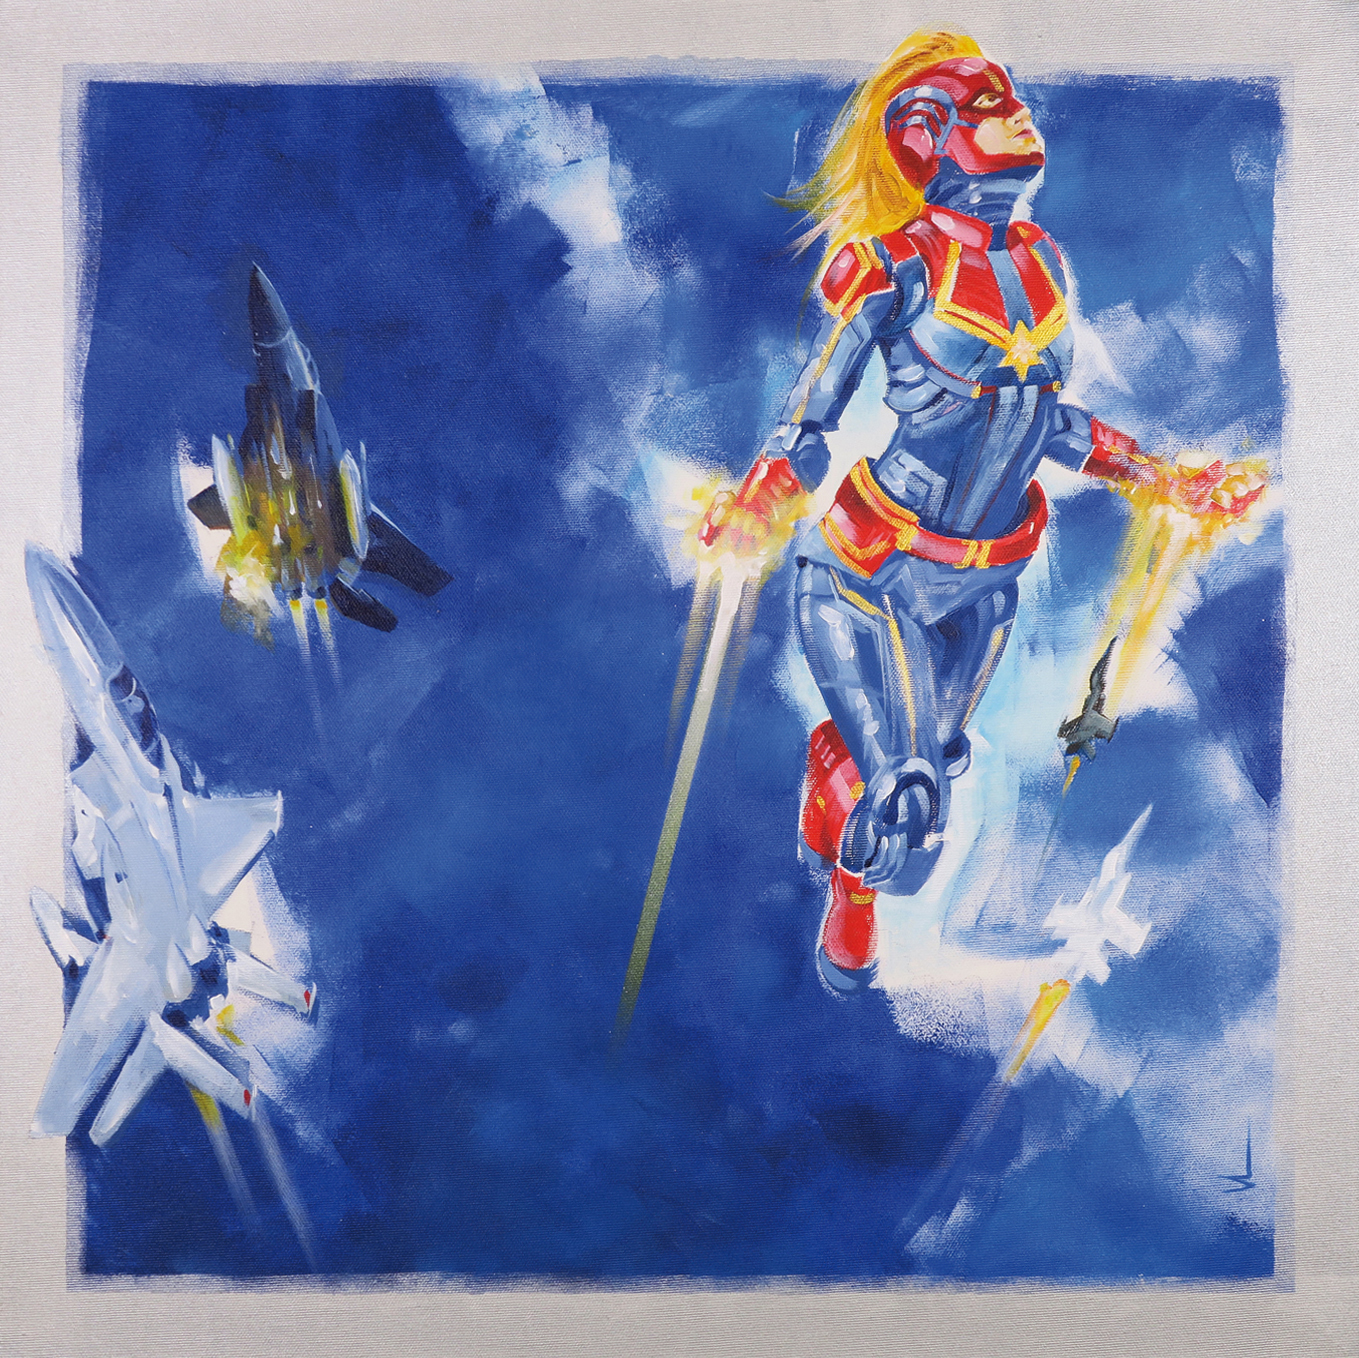 SH_Captain_Marvel_60x60_Acrylic_On_Canvas